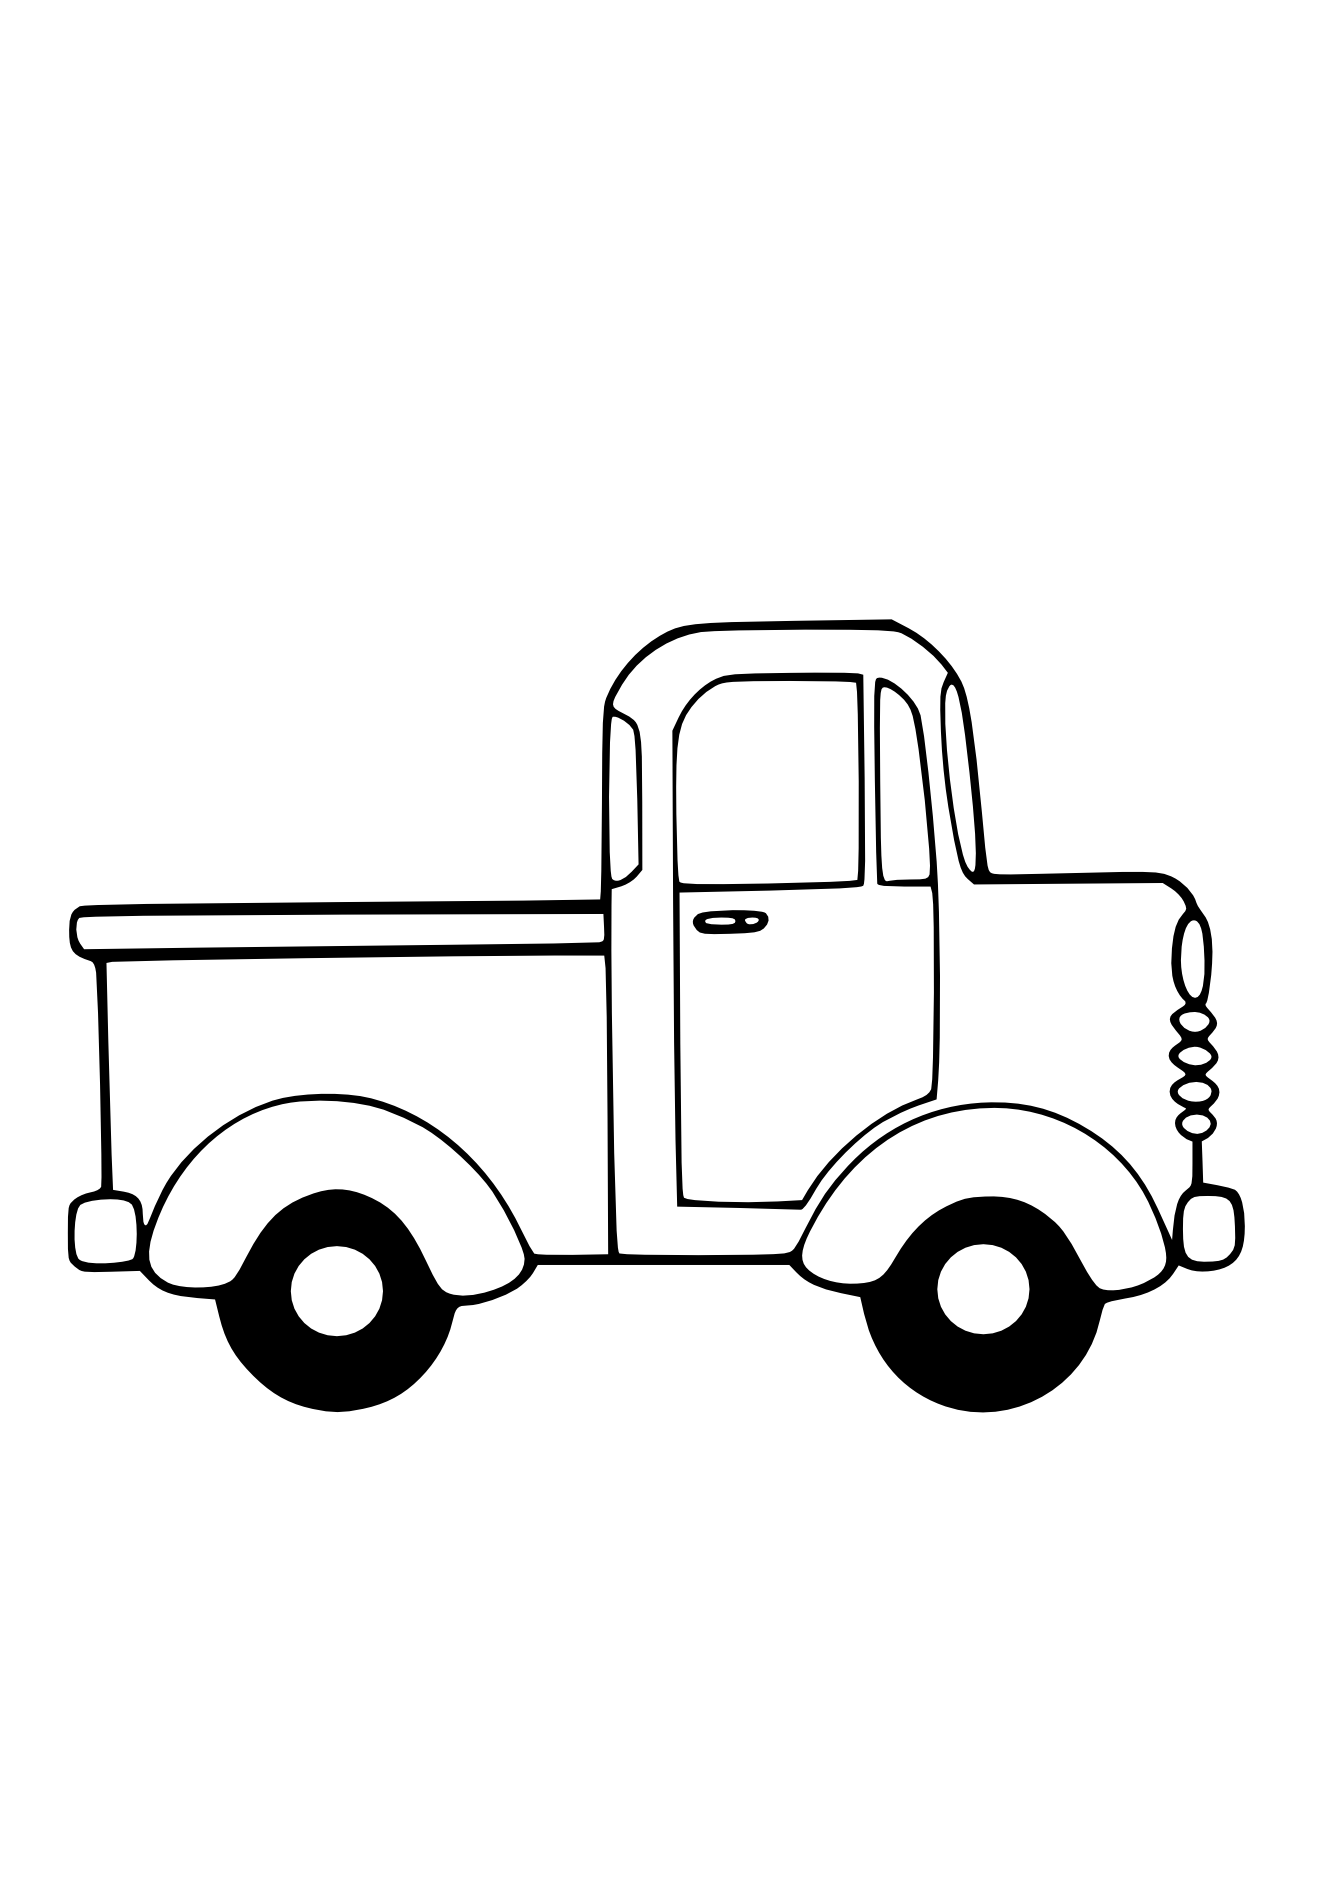 1331x1882 Truck Black And White Bus Clipart Image A Black And White Van